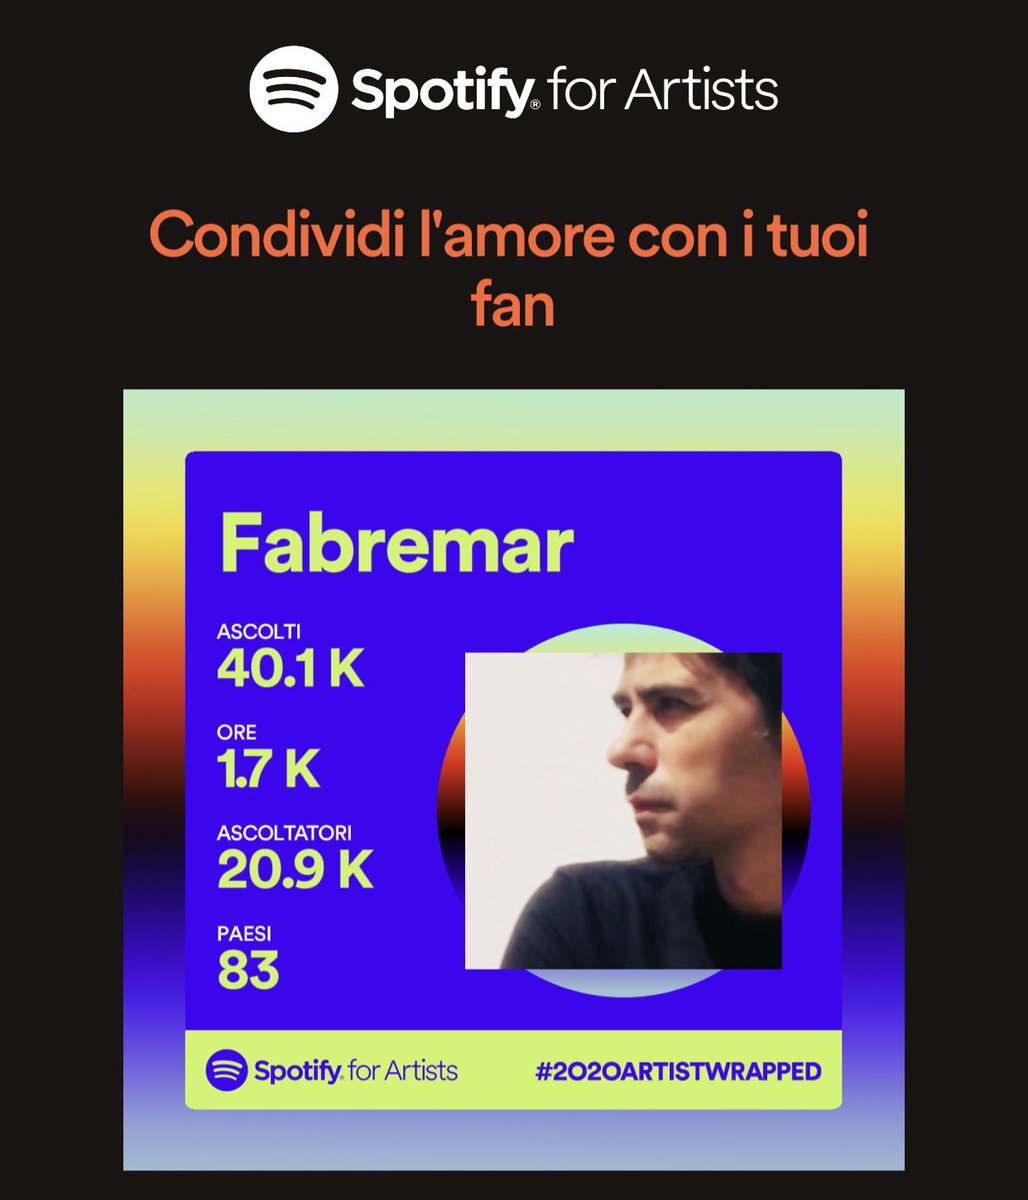 #Spotify #spotifyforartists #SpotifyWrapped2020 #Spotify2020 #SpotifyArtistWrapped2020 #spotifyedm #edmmusic #dancemusic #popmusic #djprod #ITUNES #musicproducer #MusicProducers #musicproduction https://t.co/SfqeapU9uu